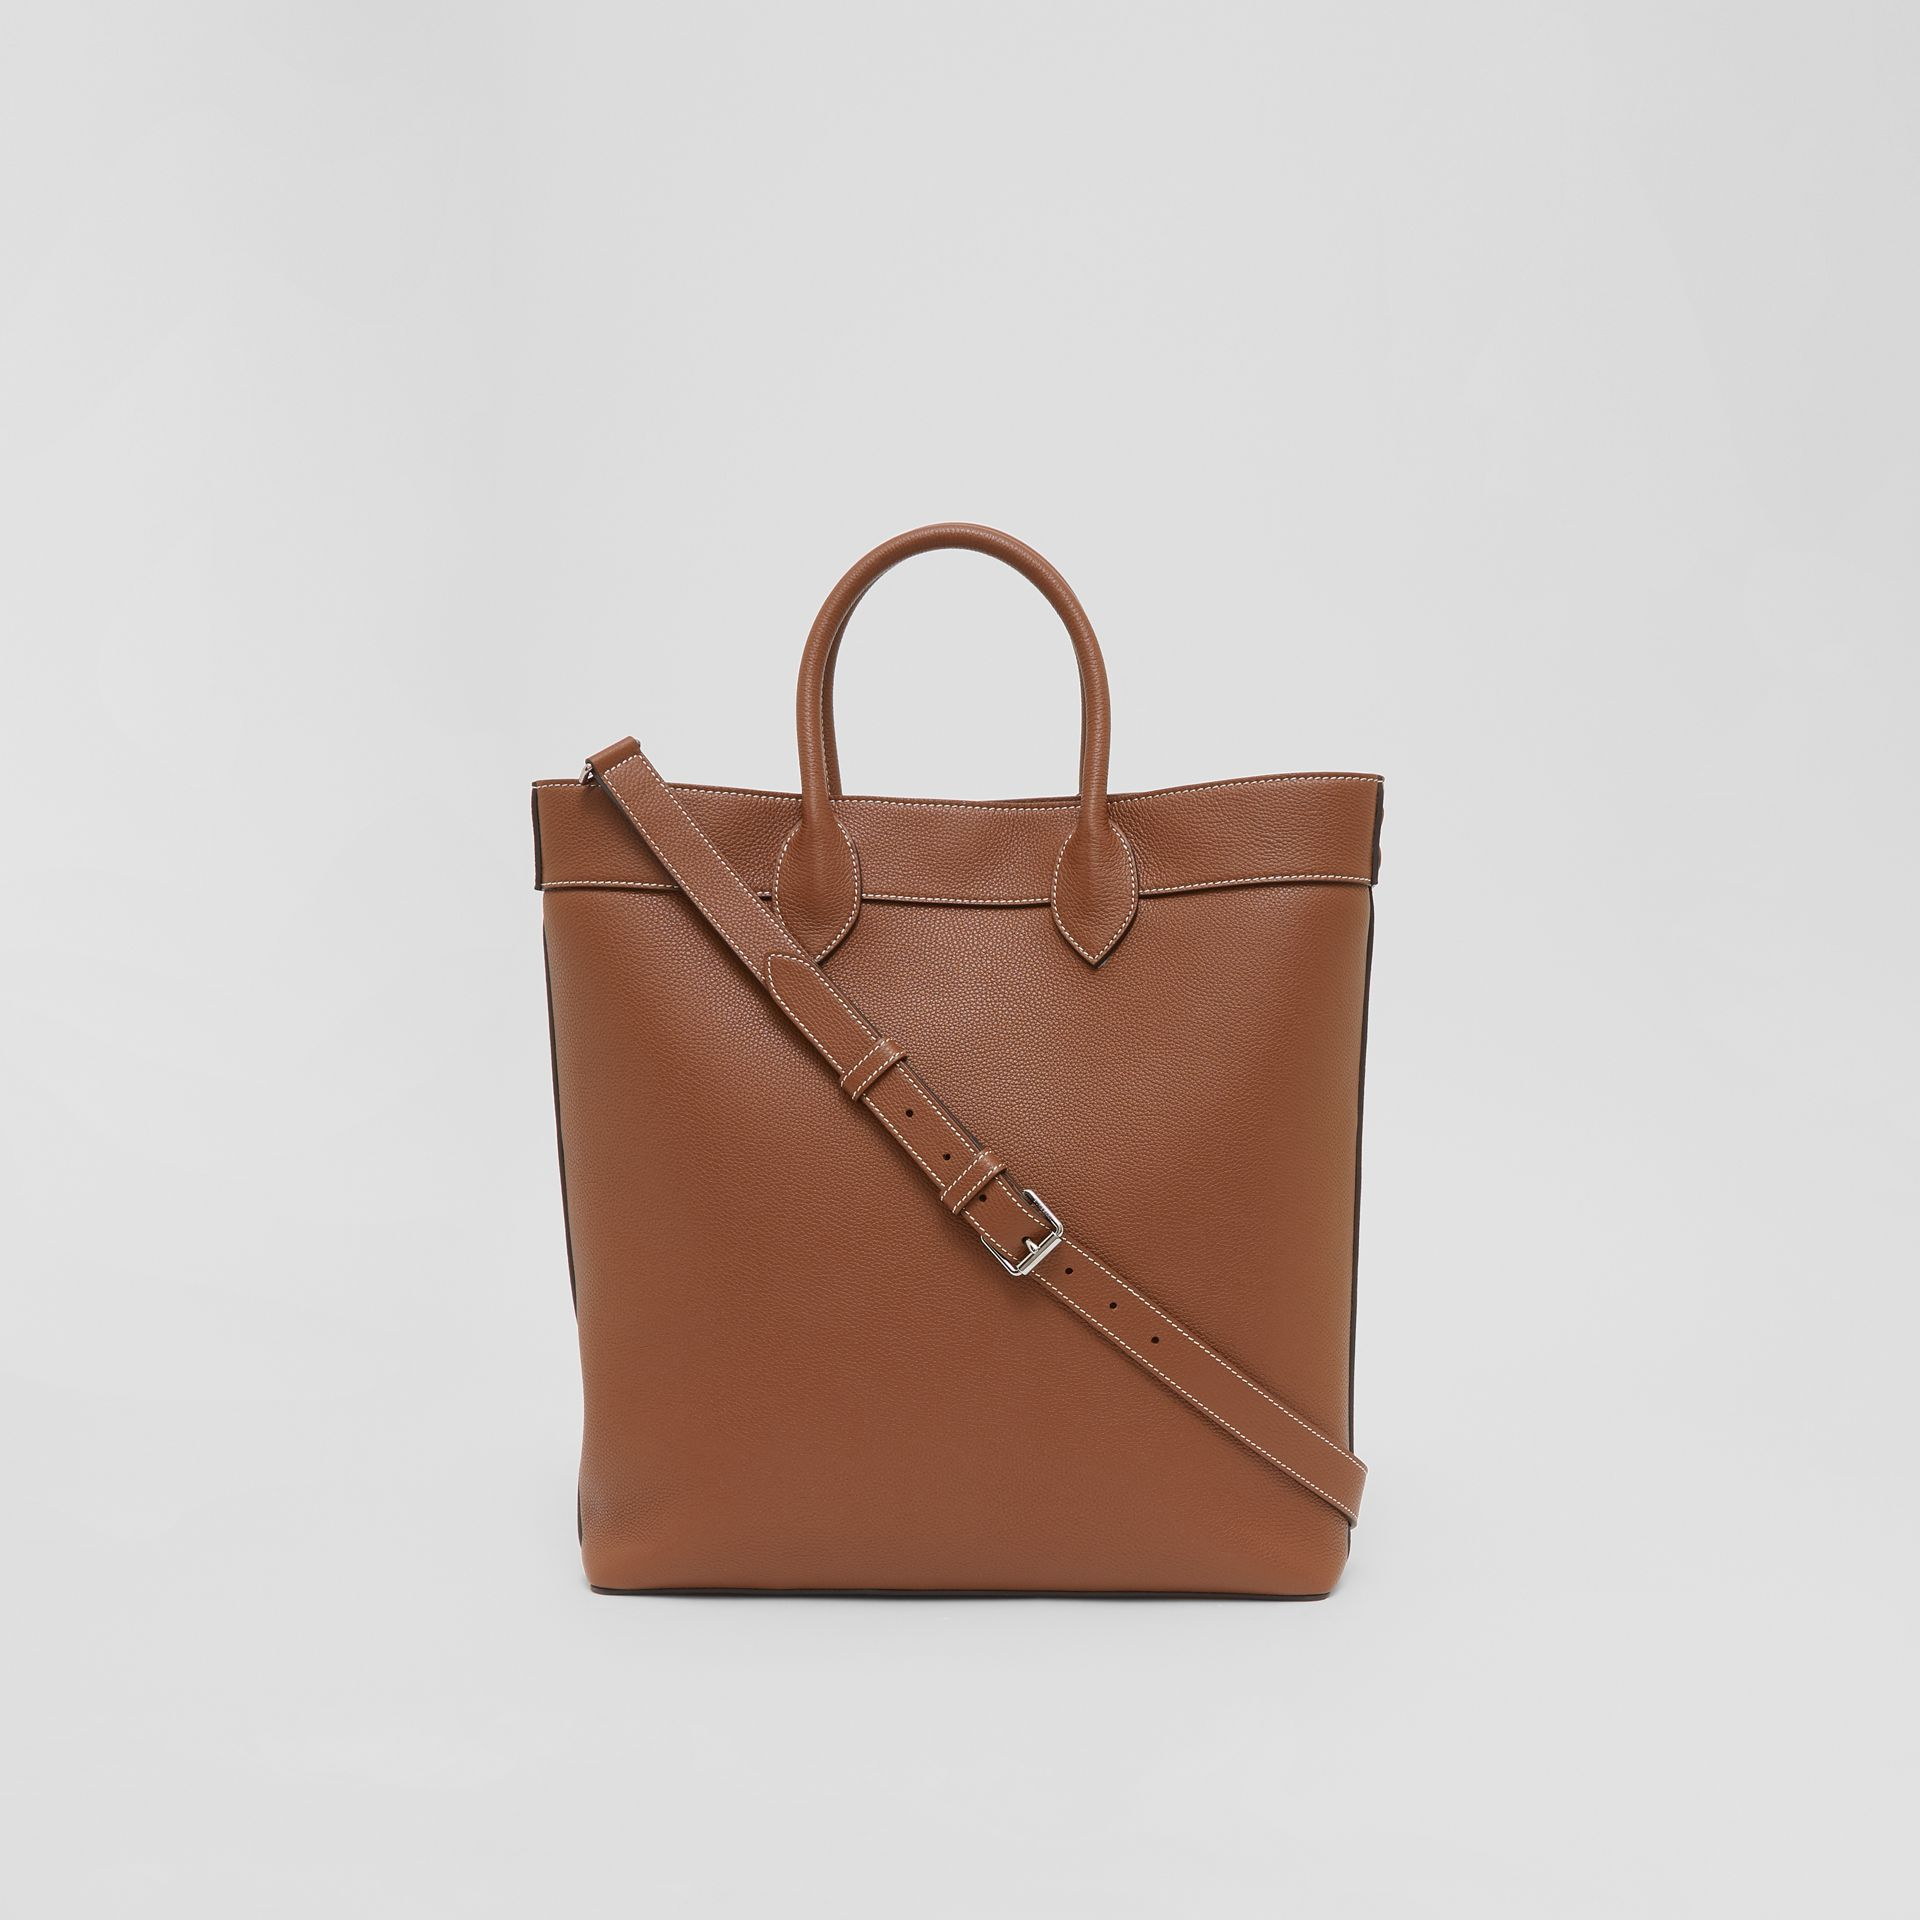 Grainy Leather Tote in Tan | Burberry - gallery image 9